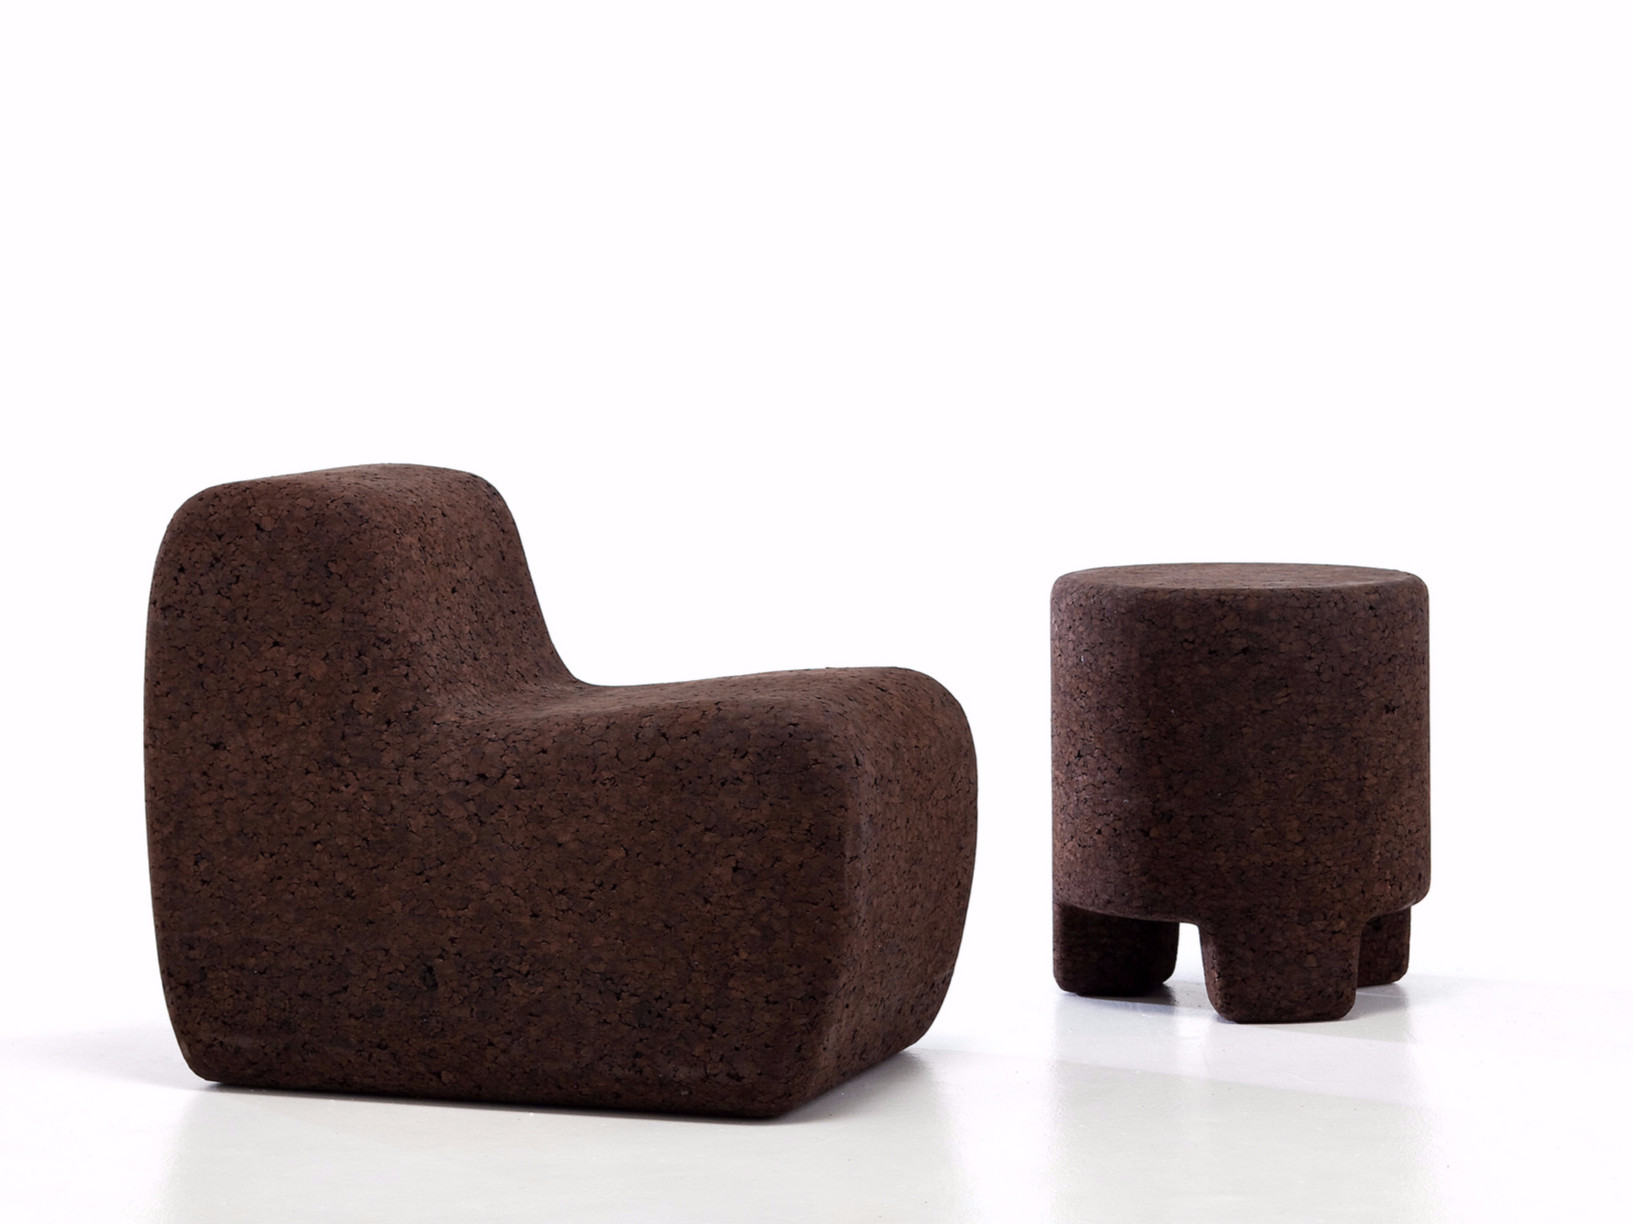 Cork 5 Lounge Chair - Lounge chair made of cork. The protection cover is also available if anyone needs. | Matter of Stuff